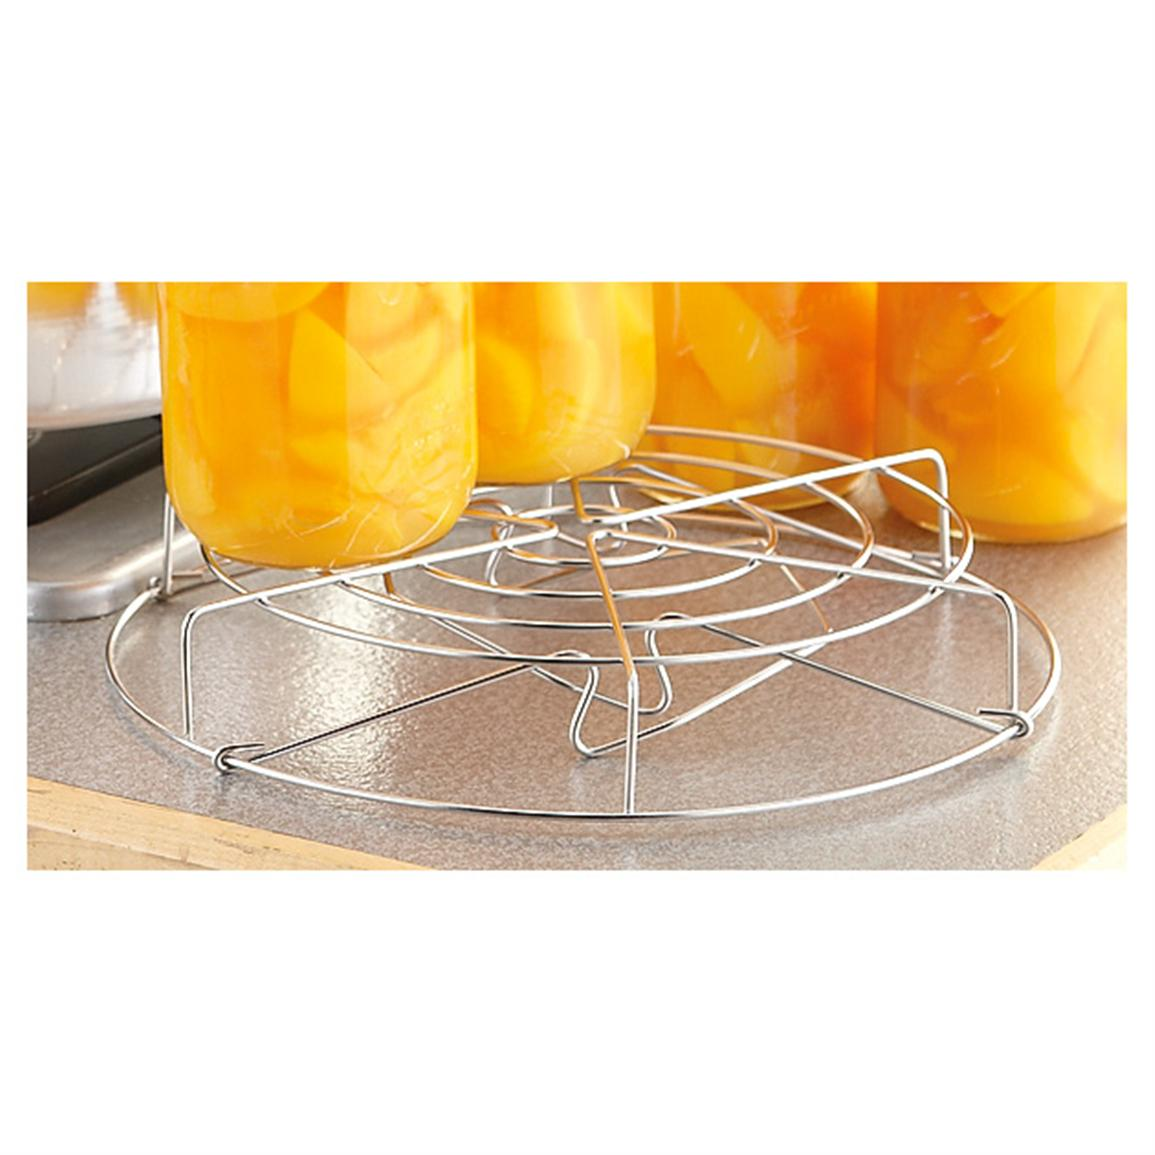 Removable stainless steel canning rack